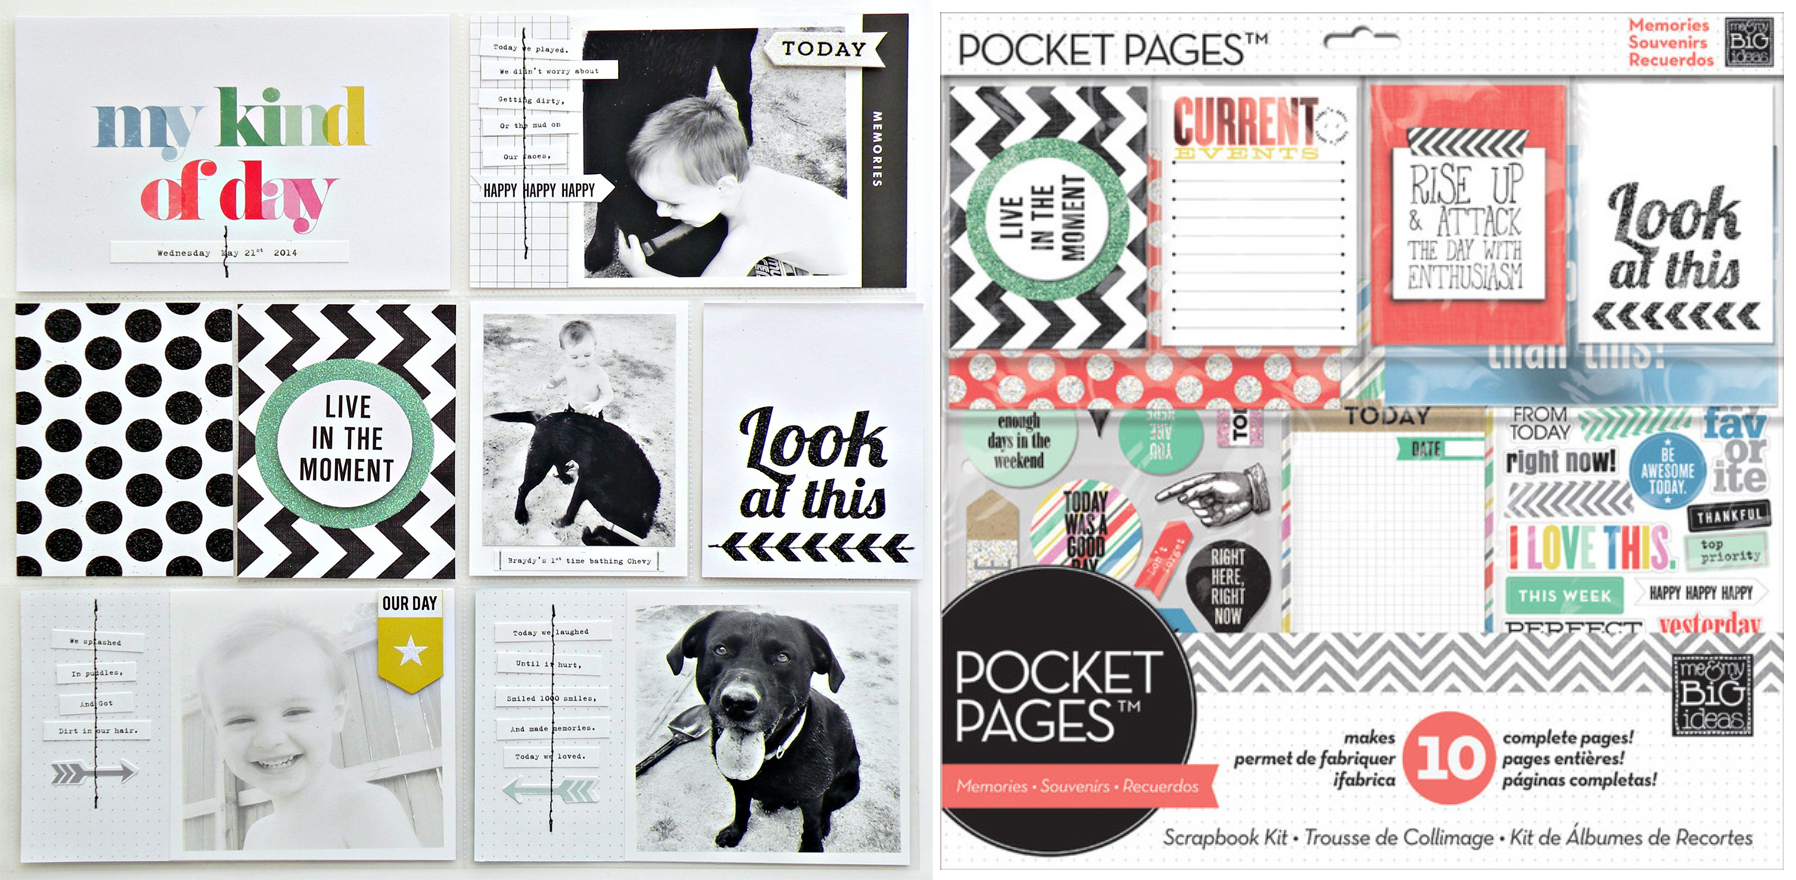 my kind of day POCKET PAGES page using mambi page kit.